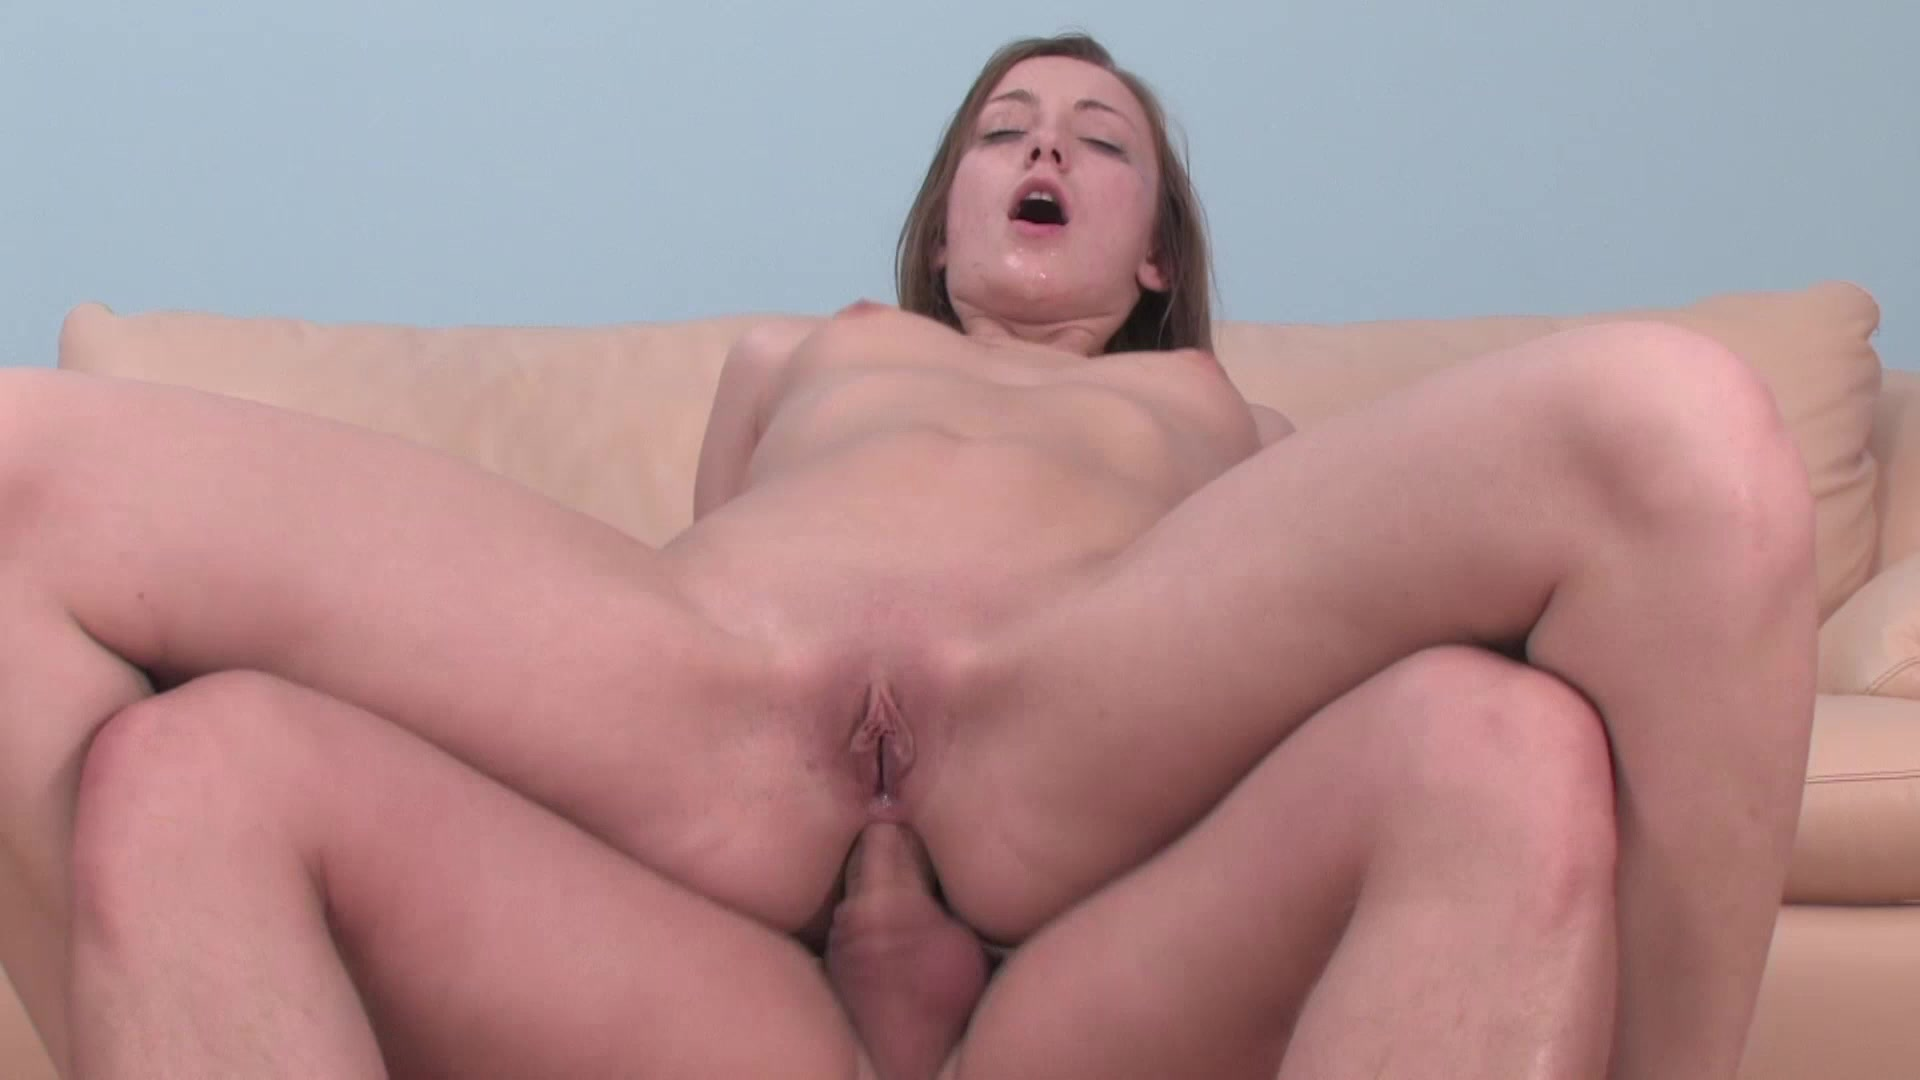 Teen Asses Without Limits